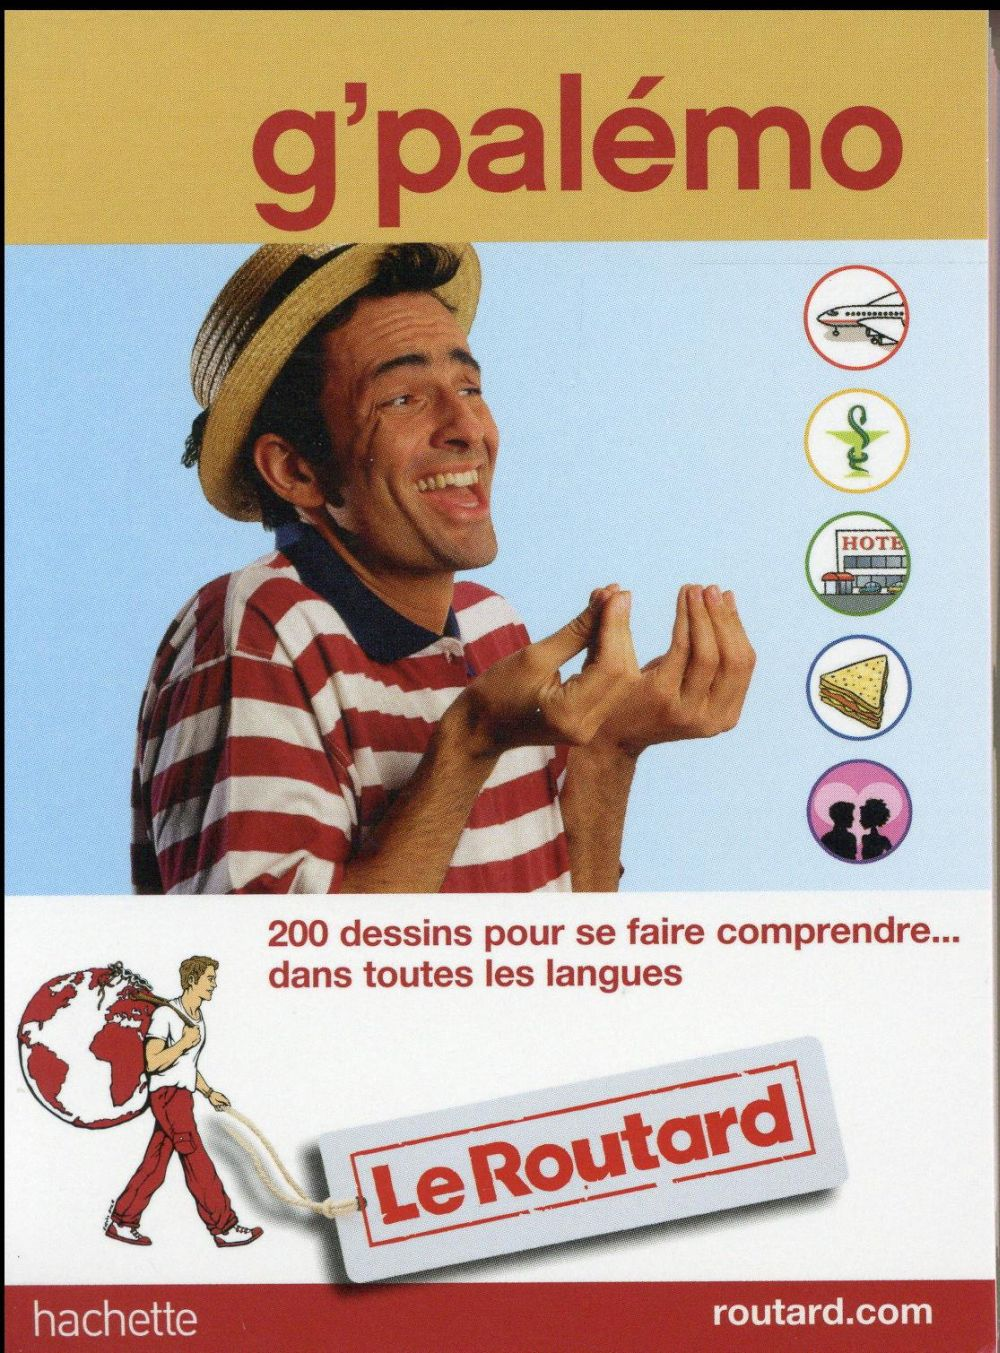 Guide du Routard ; g'palémo